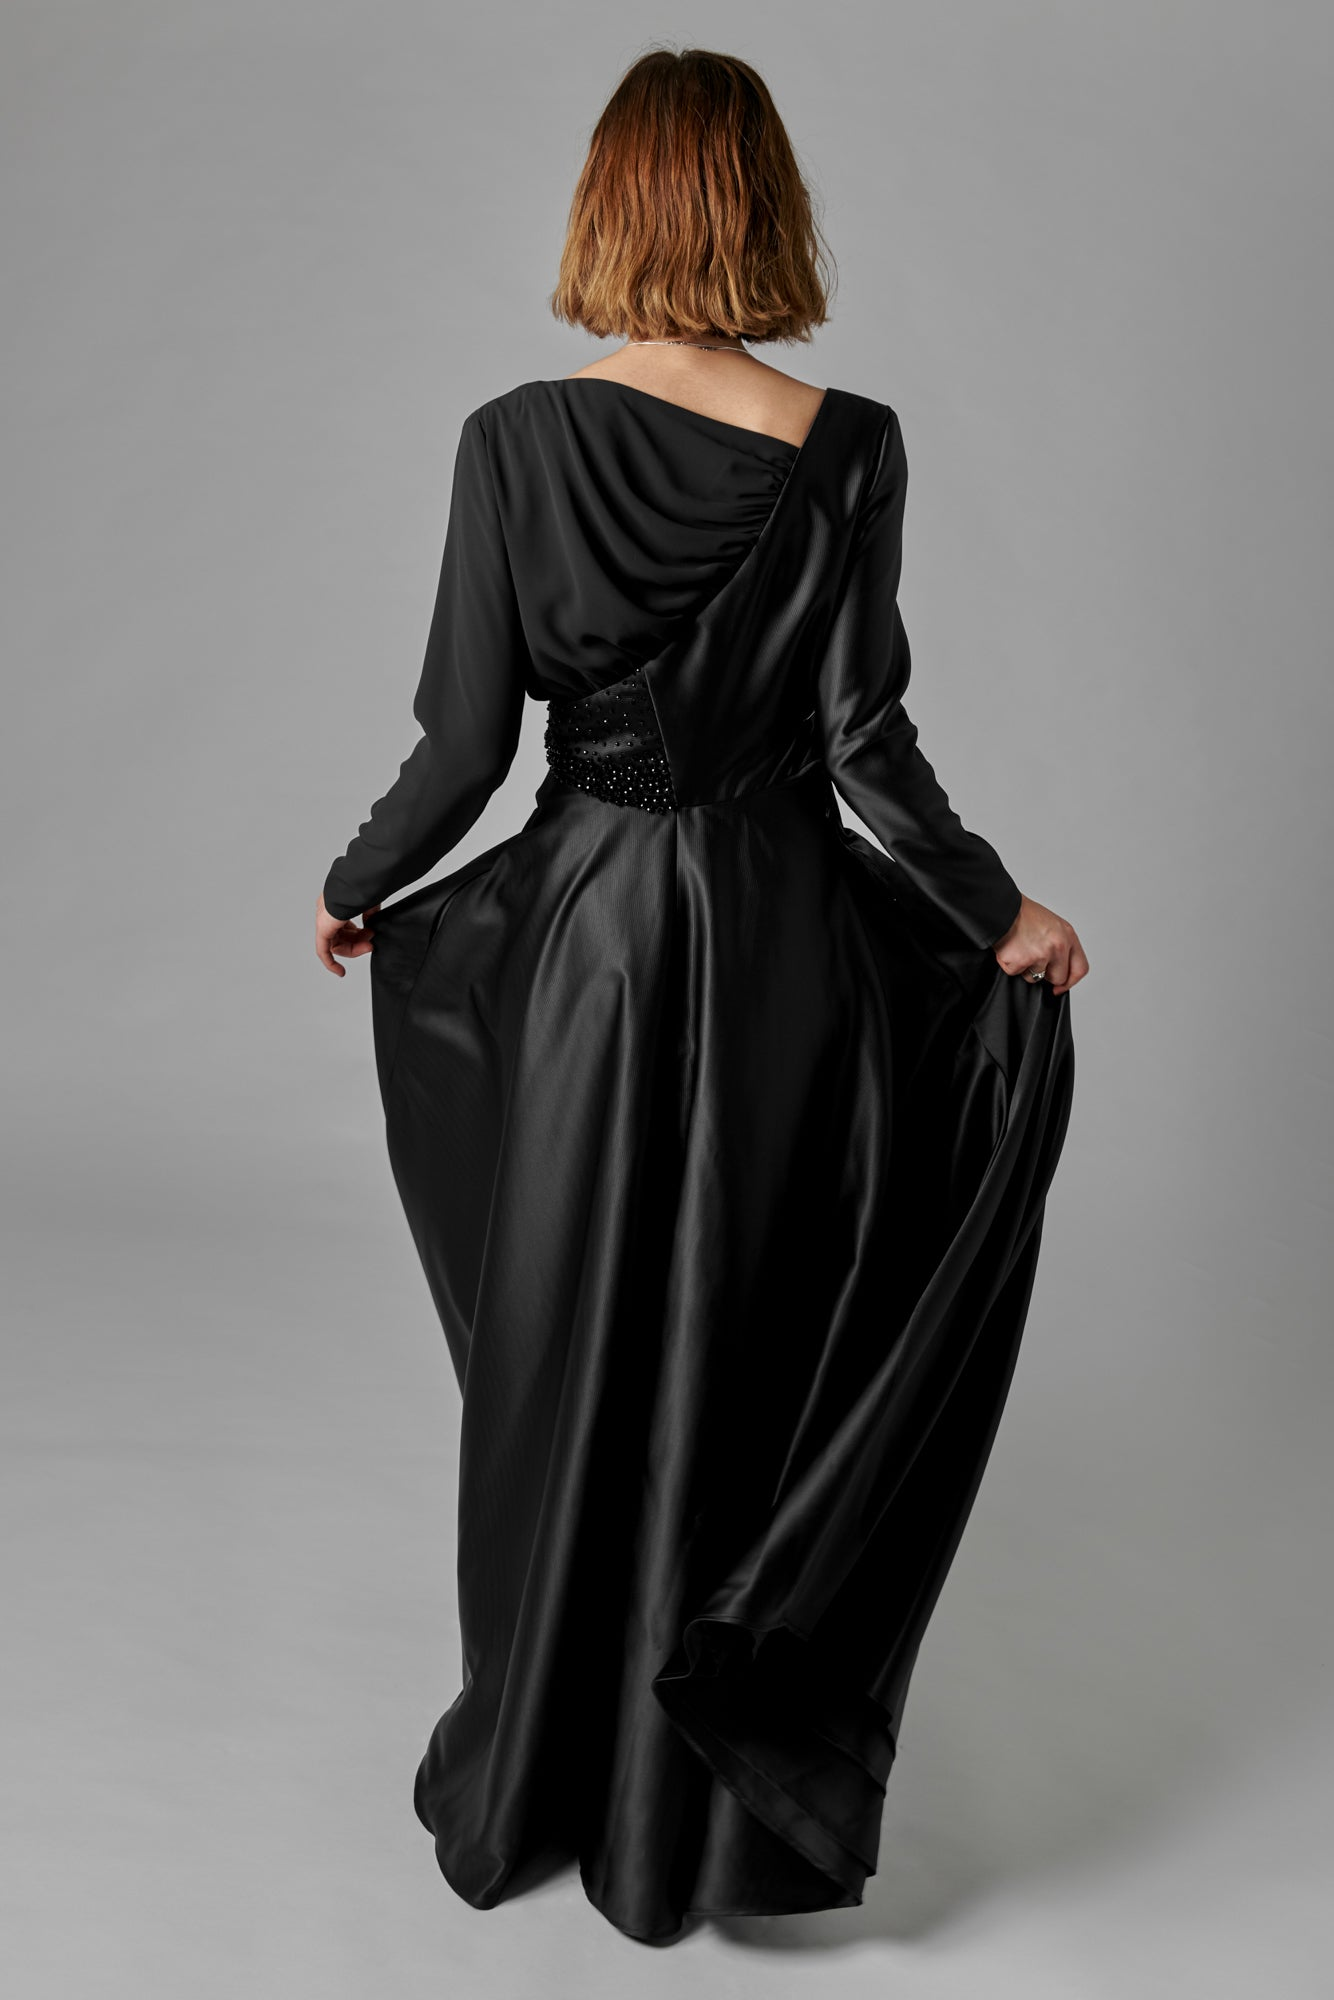 Limited Edition Gown 1